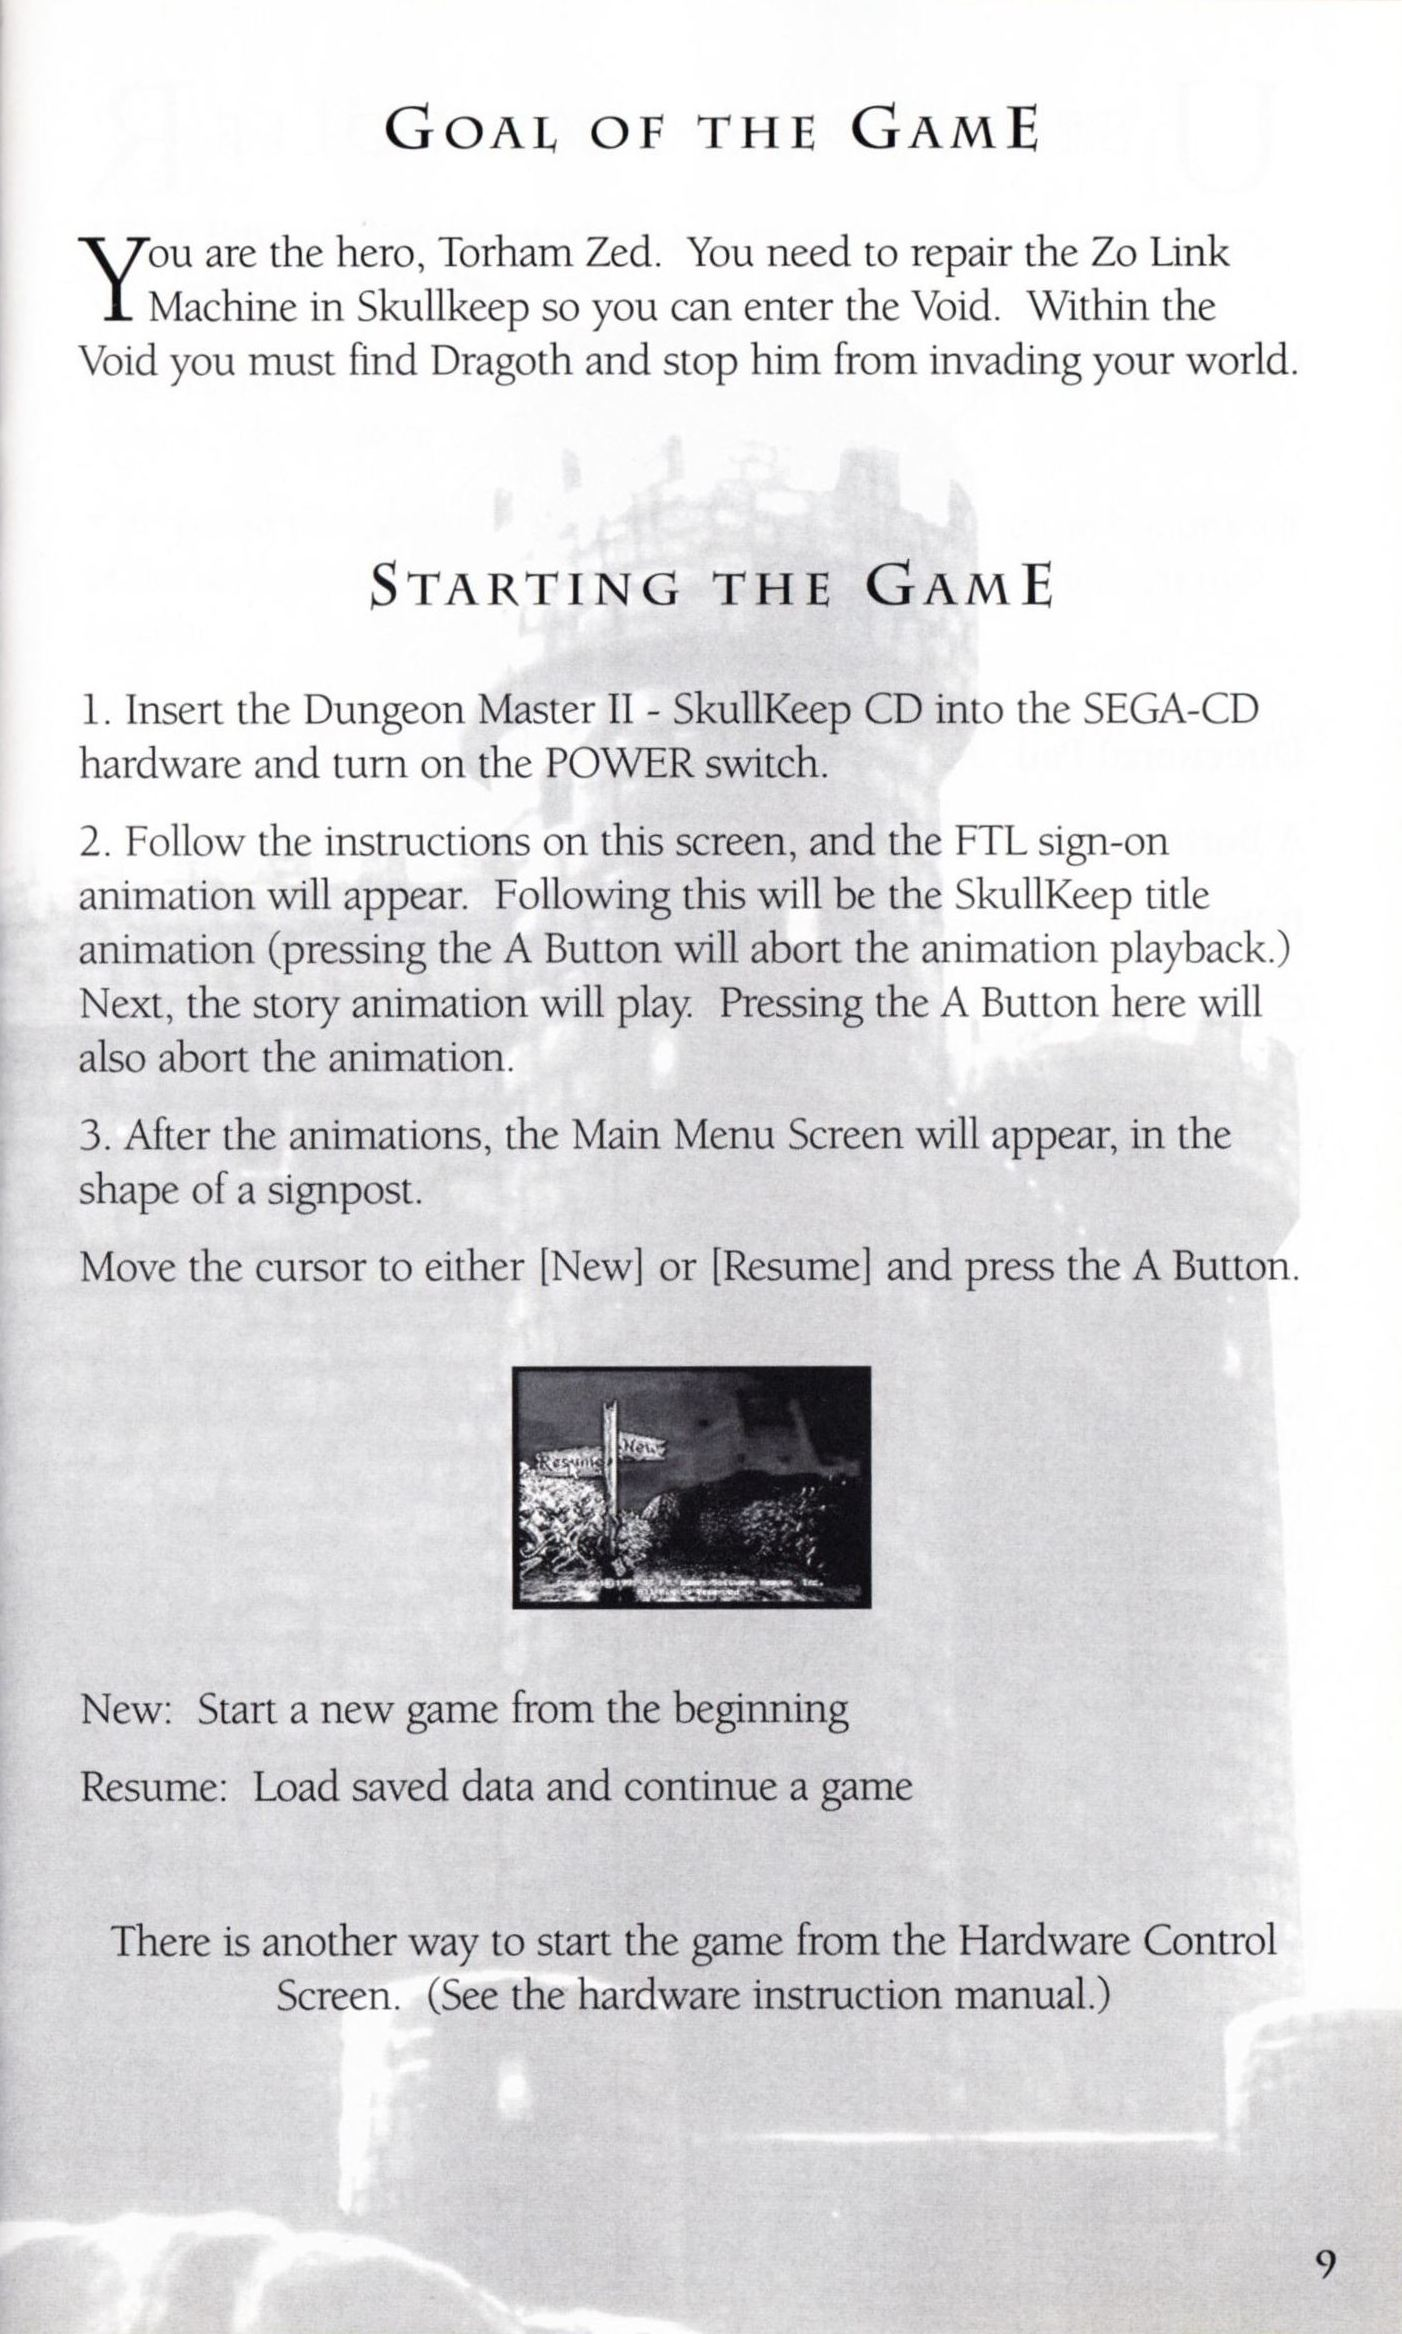 Game - Dungeon Master II - US - Sega CD - Booklet - Page 011 - Scan